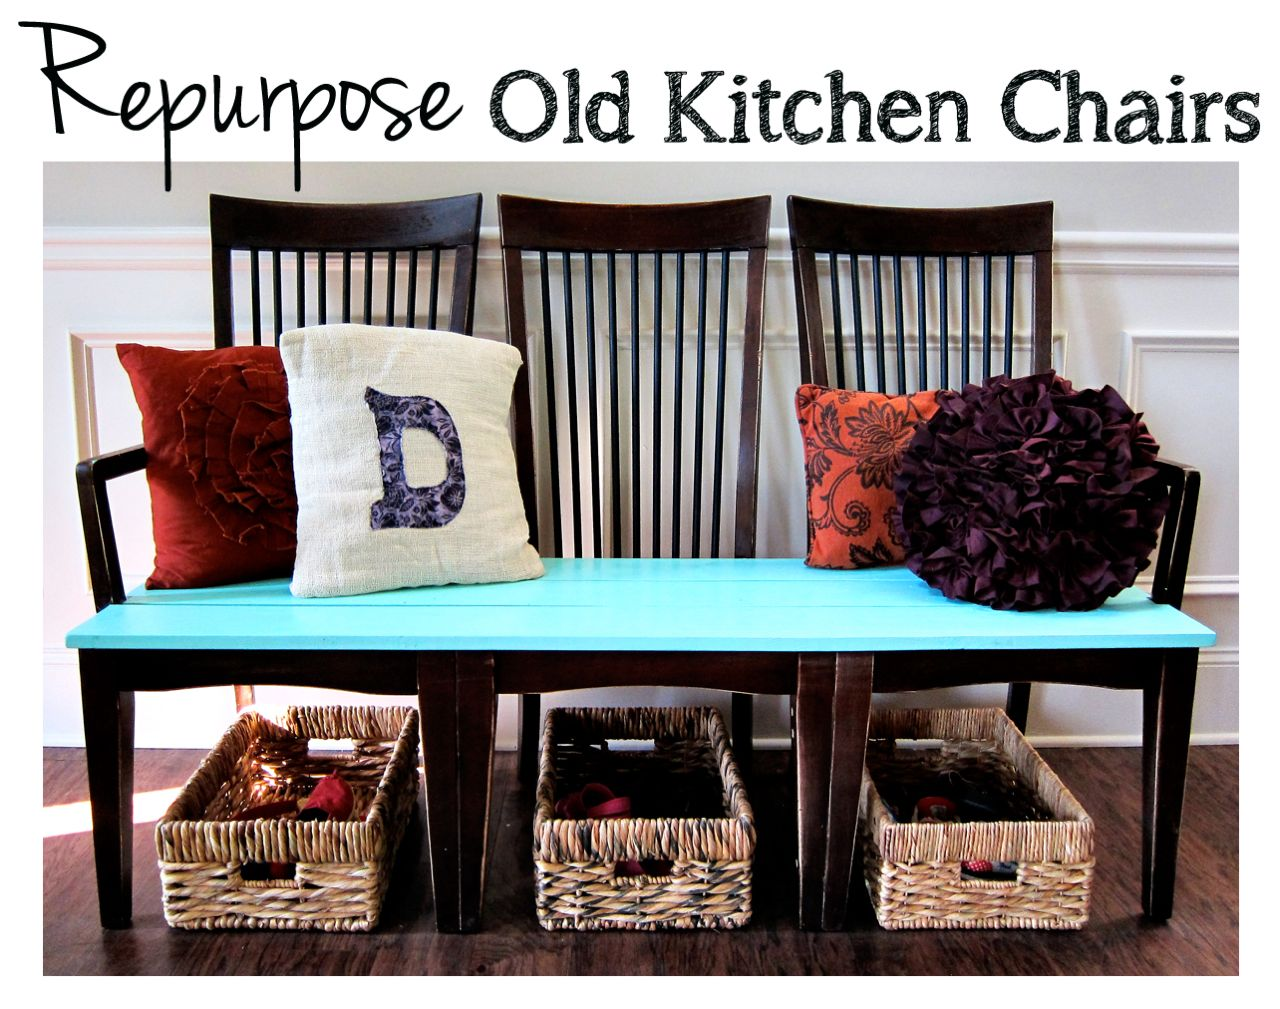 Reusing Old Furniture repurpose old kitchen chairs - spoonful of imagination